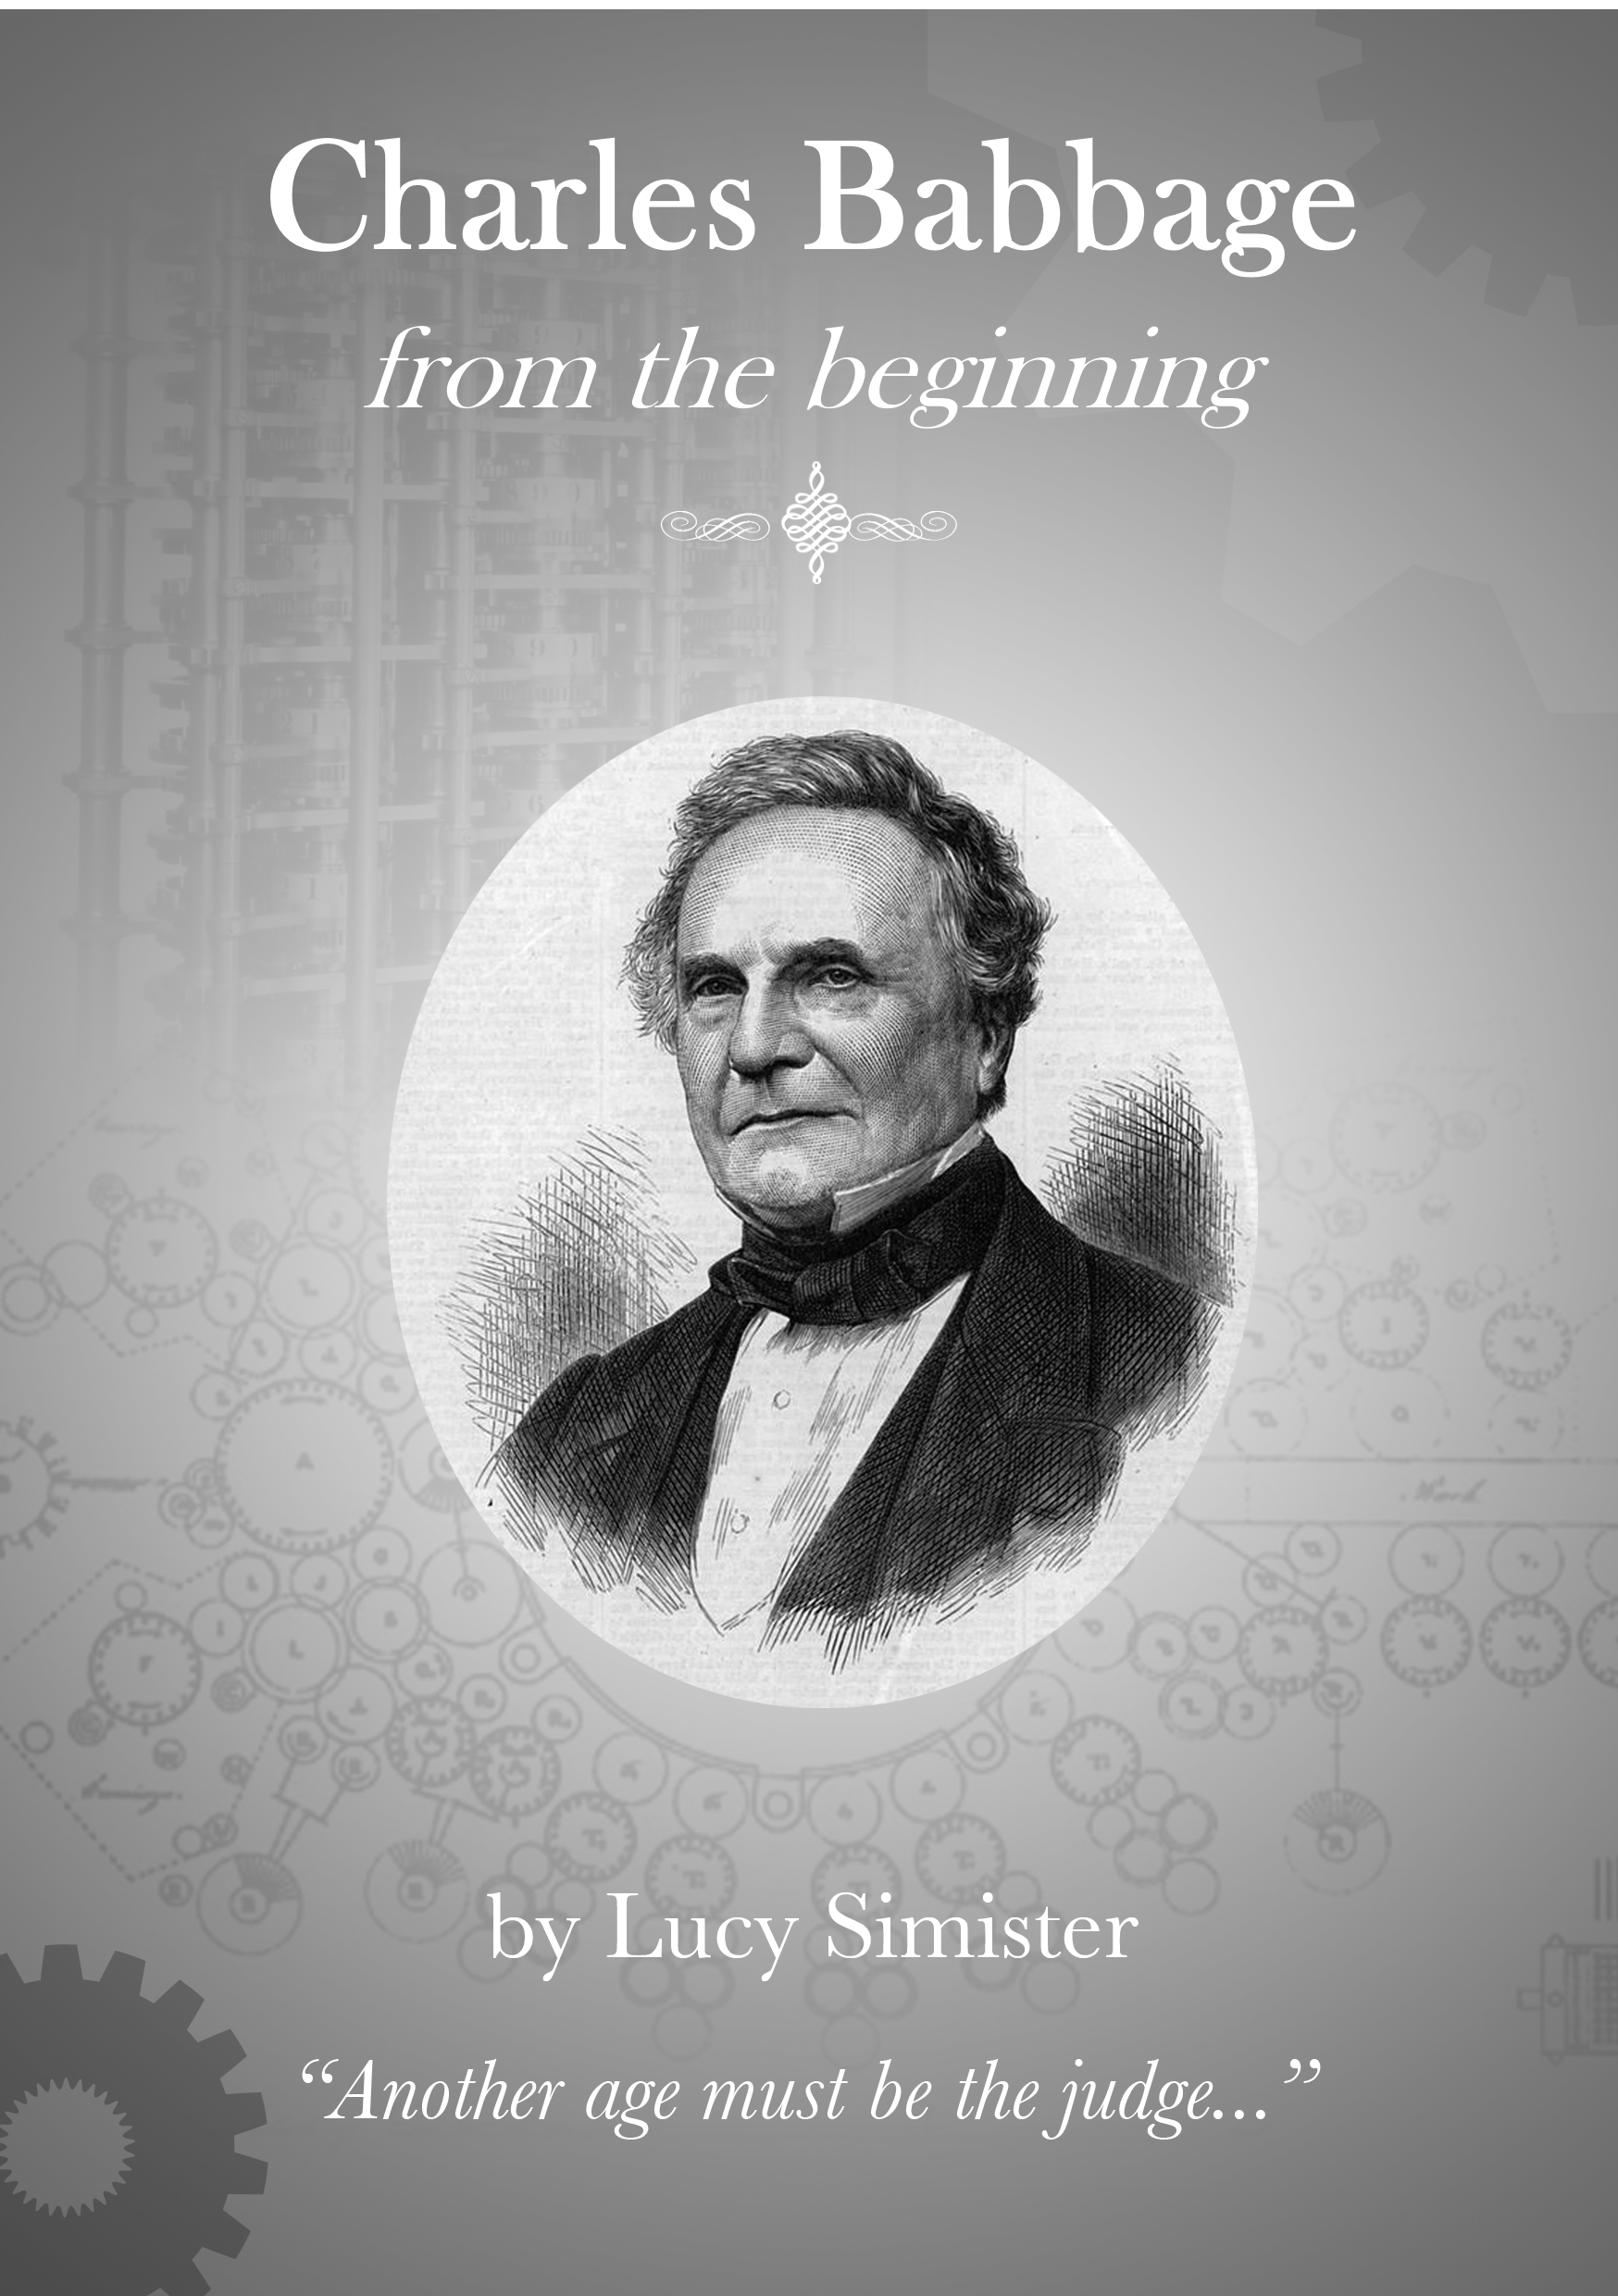 management theory the classical contributes charles babbage Contribution of charles babbage the scientific management school contributions of: founder of the classical management school the theory focuses mainly to.